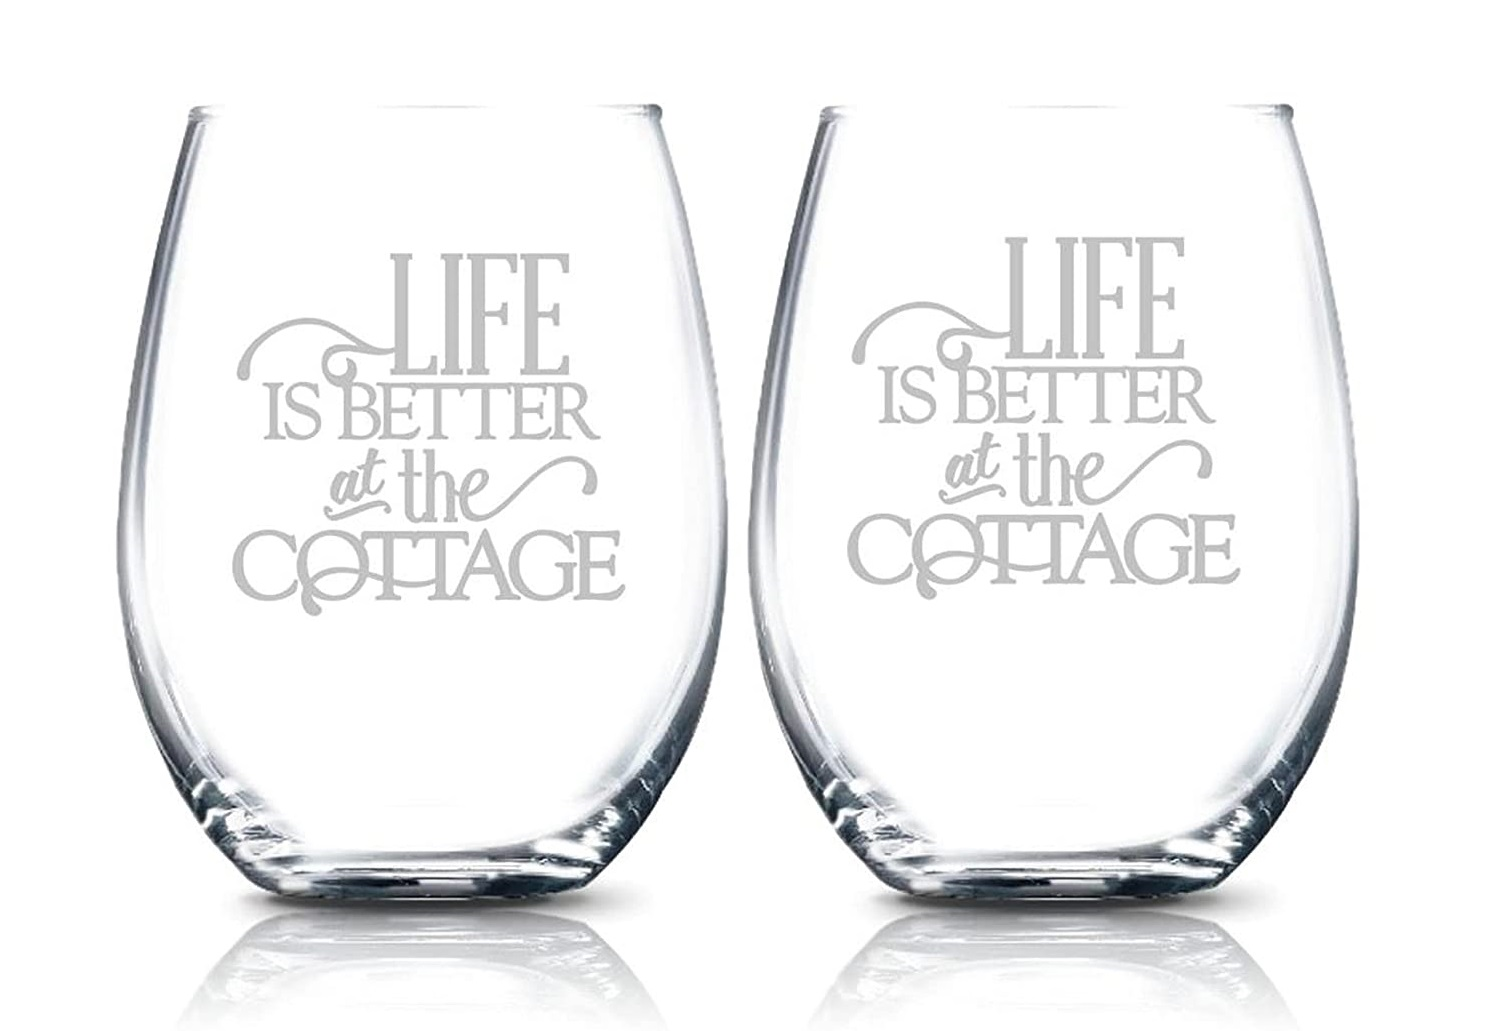 Thank You Gifts for the Cottage - Wine Glasses